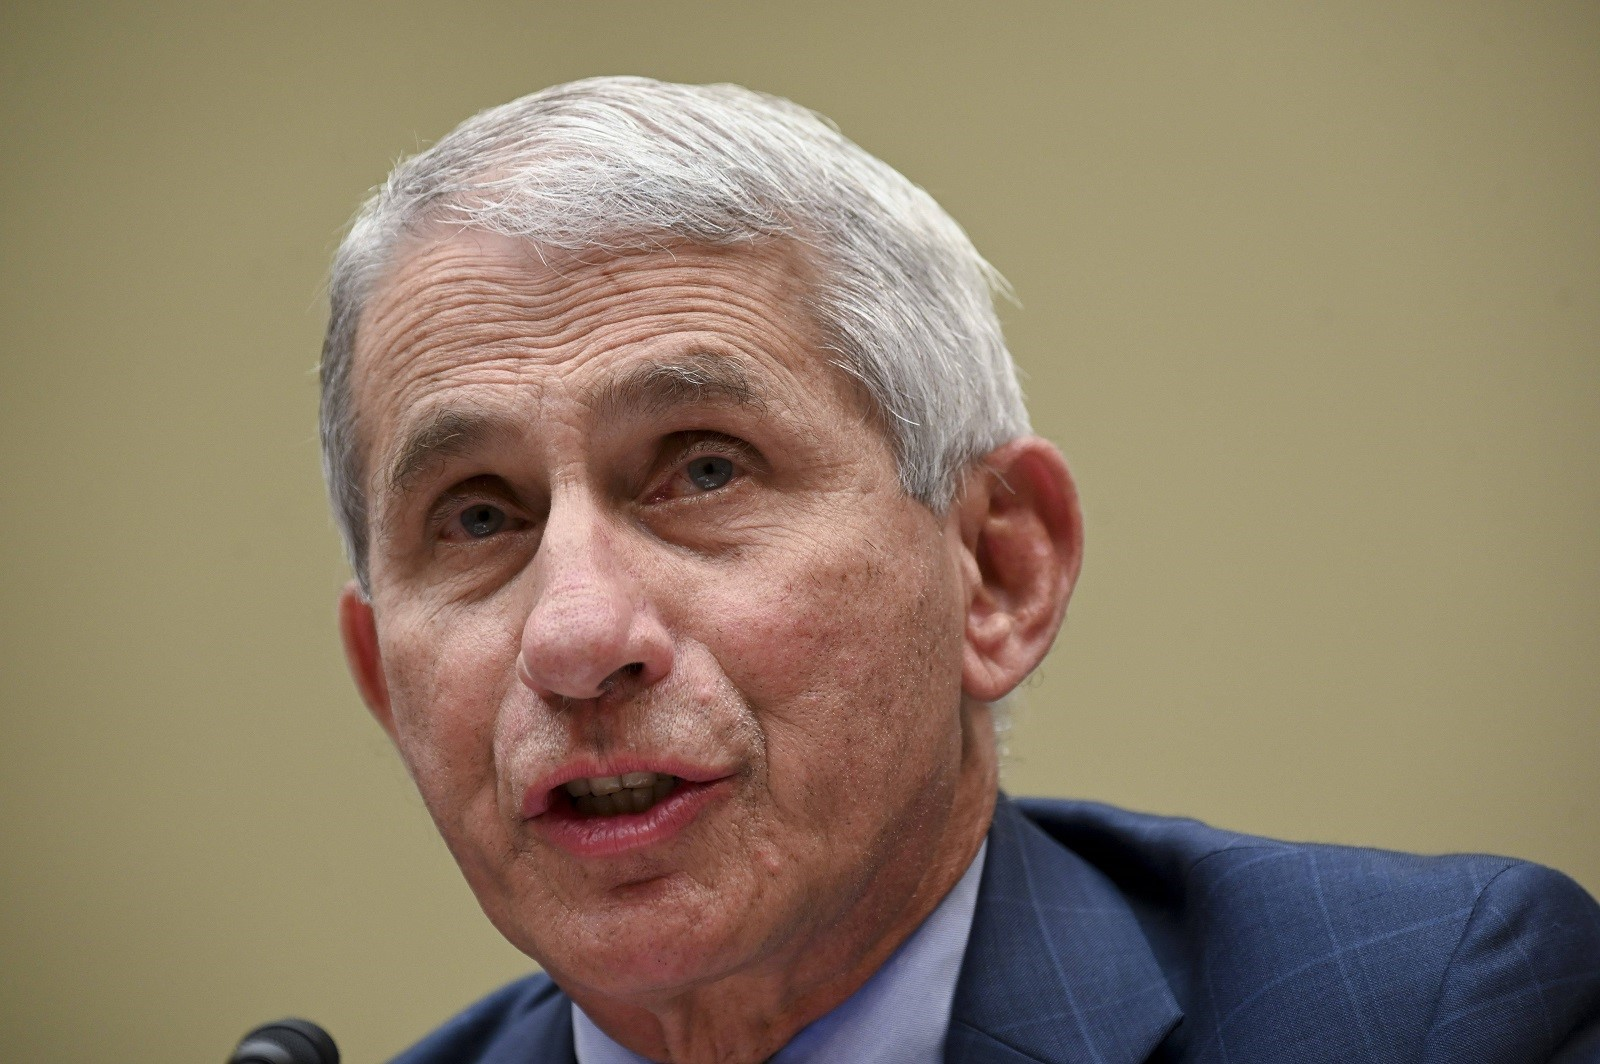 Dr. Fauci has 2 new things everyone needs to do to avoid a wintertime coronavirus catastrophe